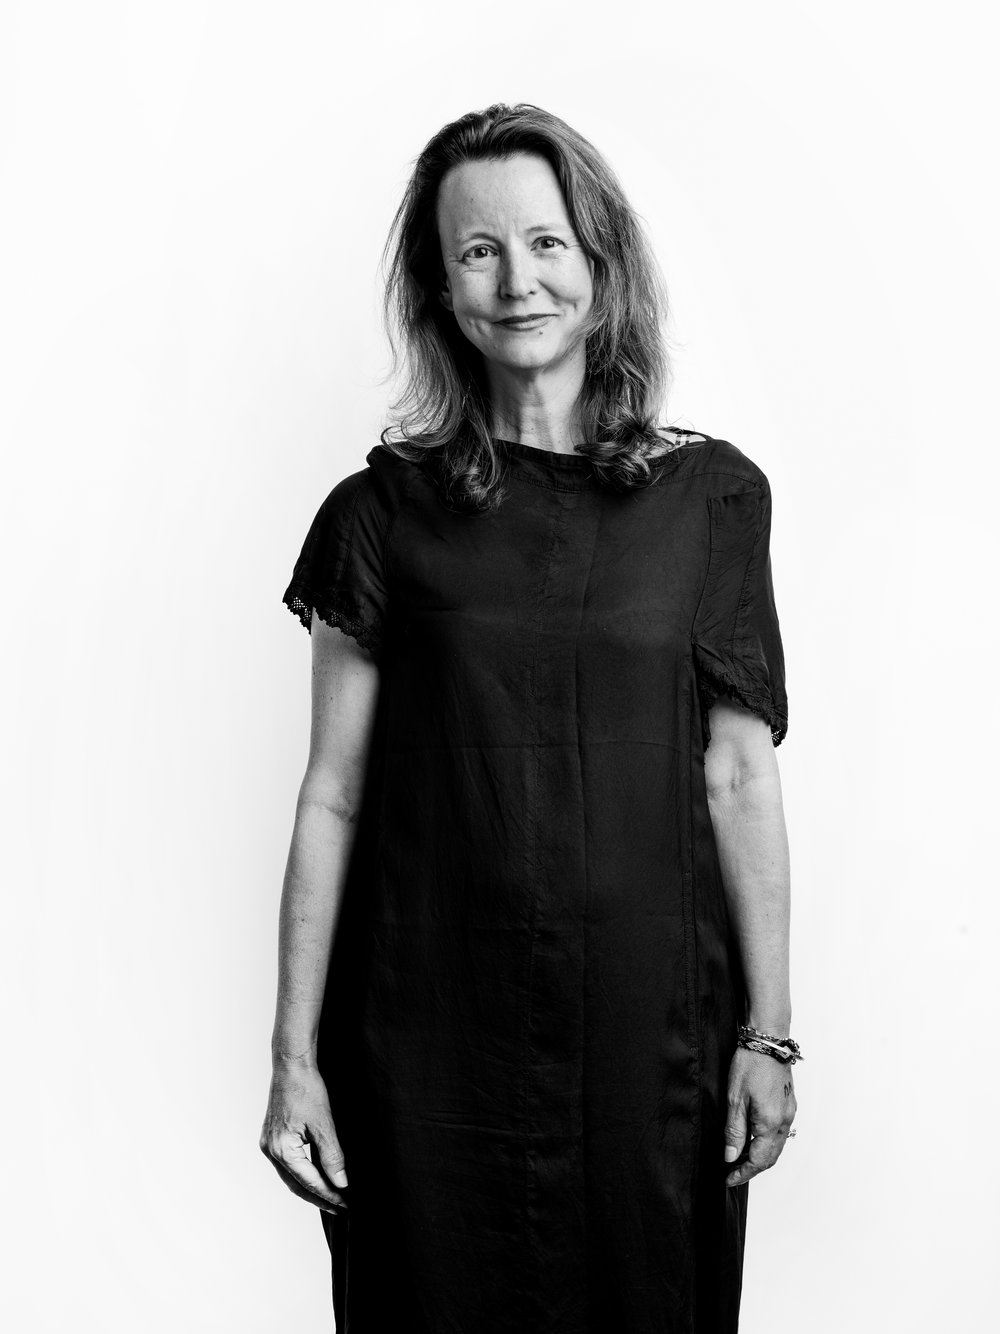 LISA STEINNEYER | ART DIRECTOR, 1988-1993